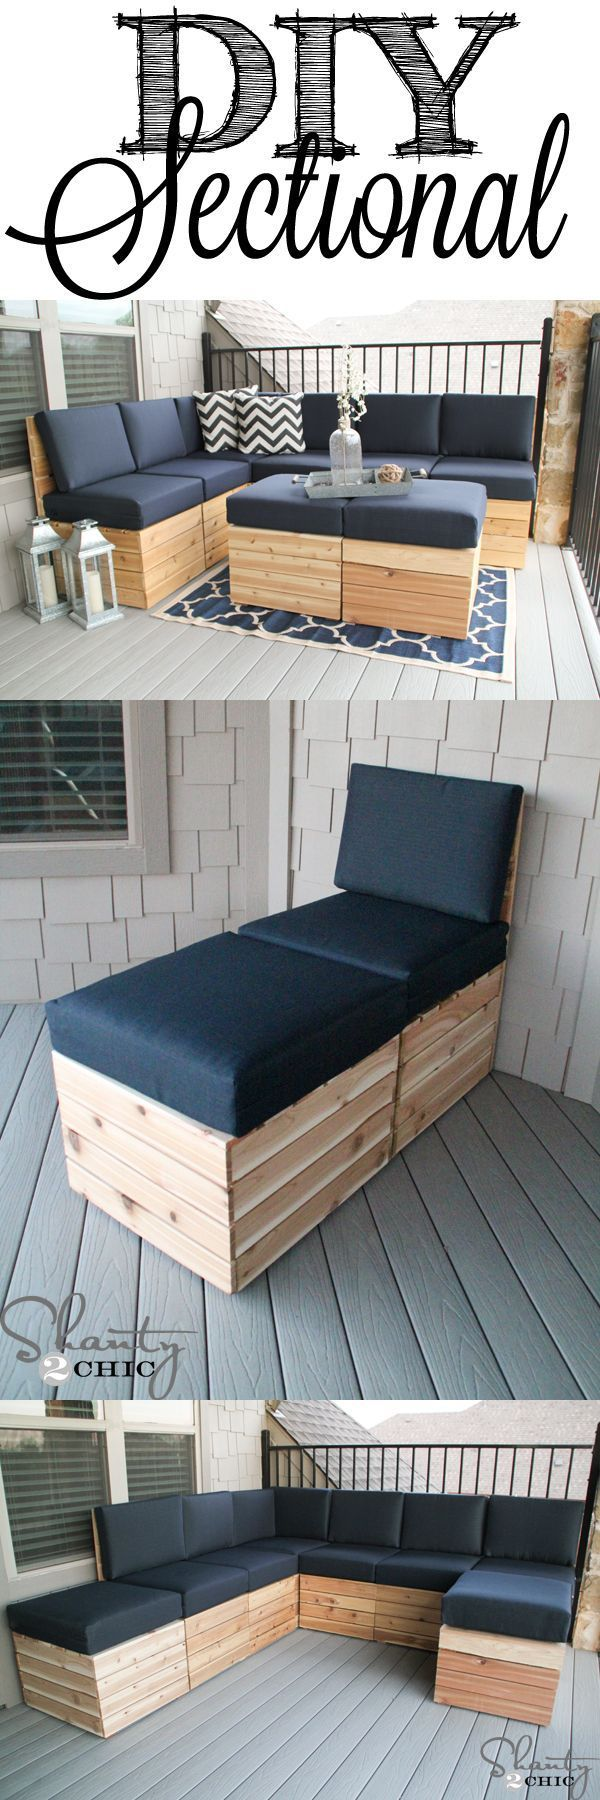 Easy to build modular seating! Mix and match to fit any space! Free Plans at shanty-2-chic.com